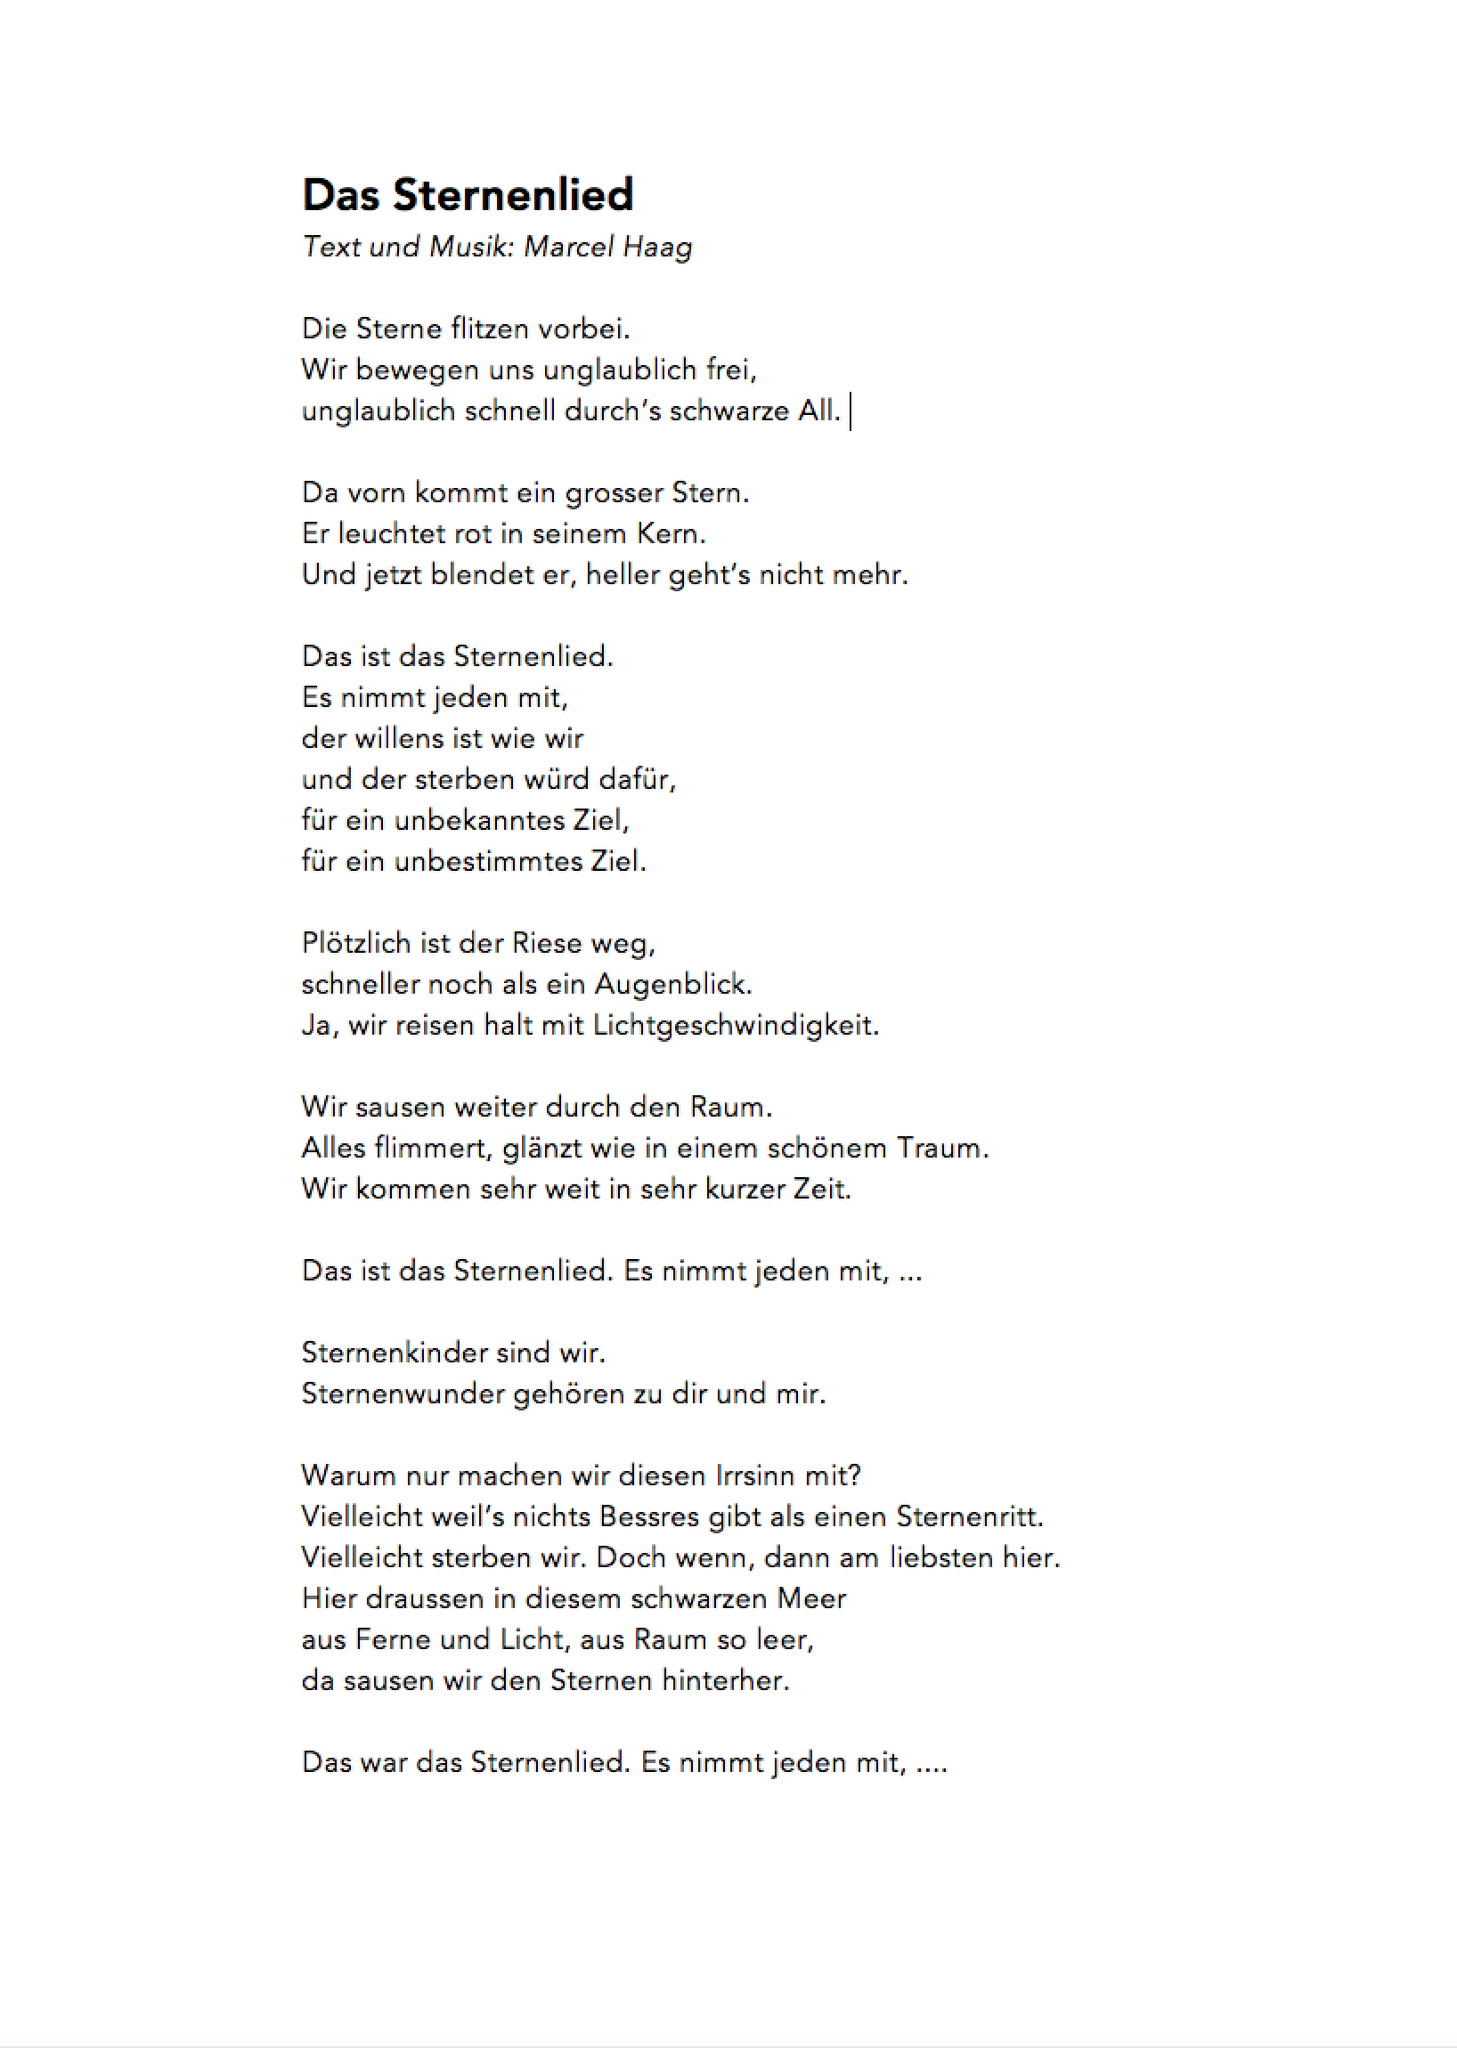 Das Sternenlied by Marcel Haag - Lyrics